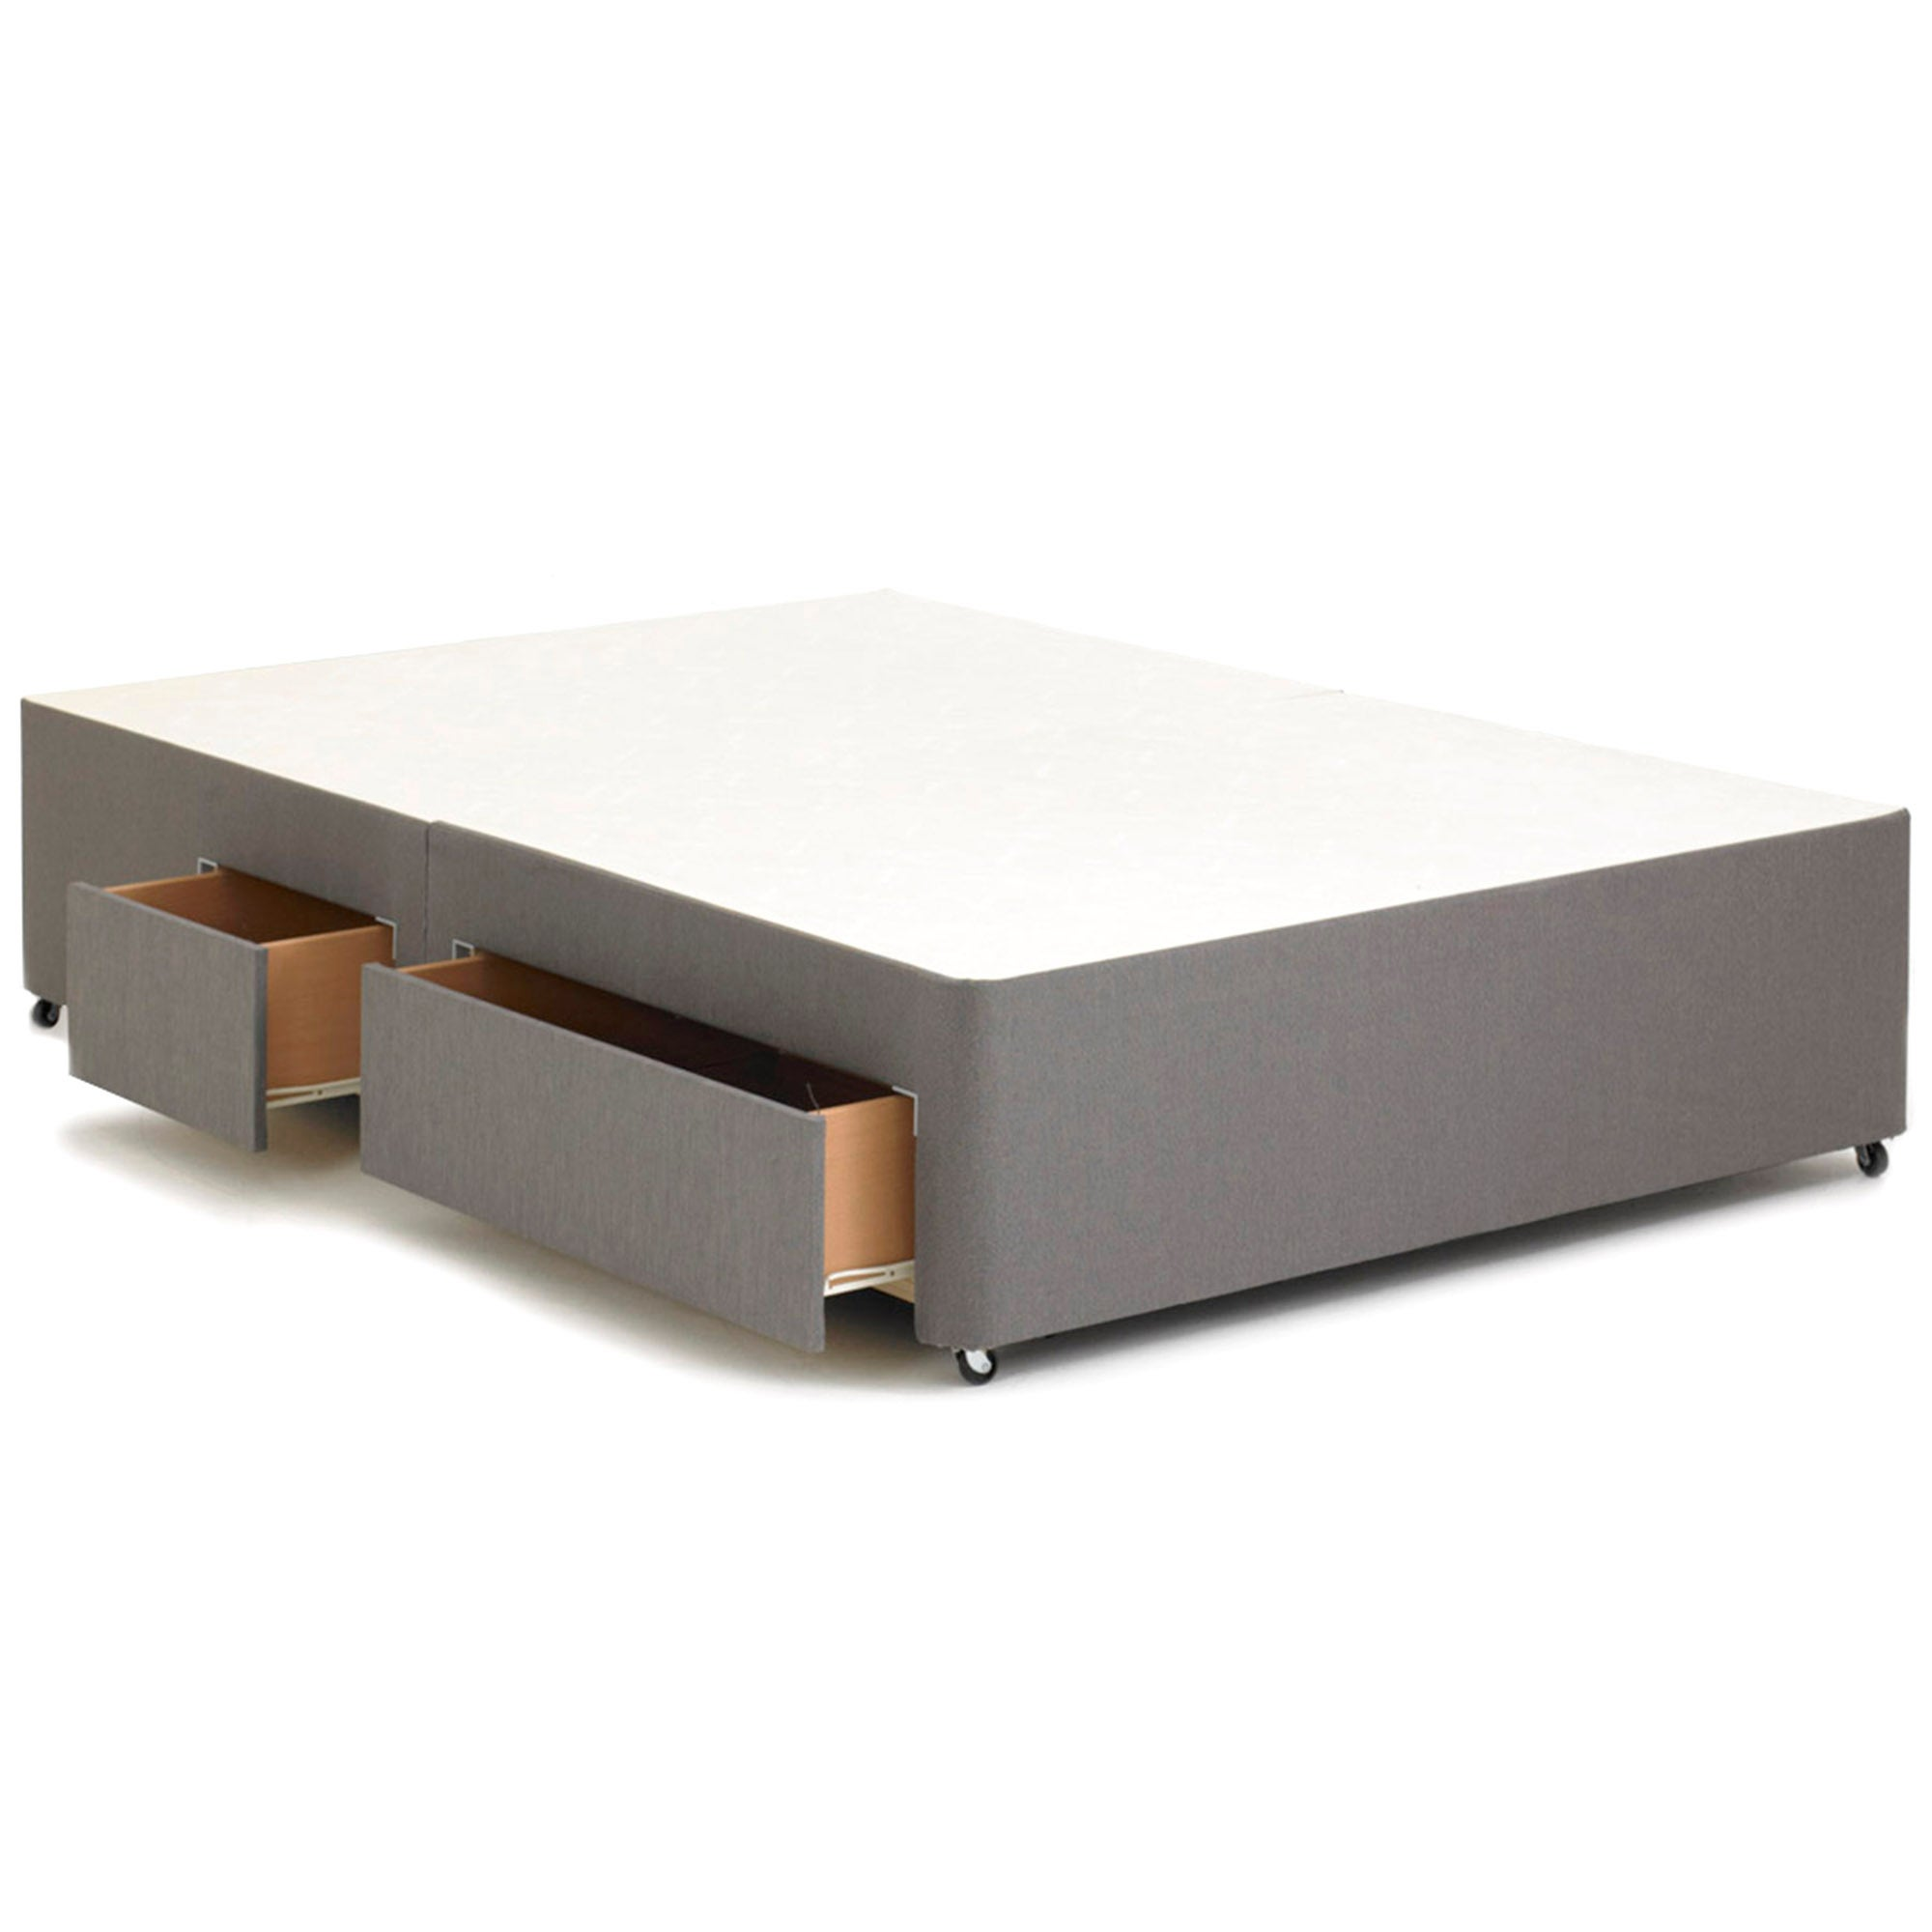 Sprung Single Divan Base with 2 Drawers Left Side